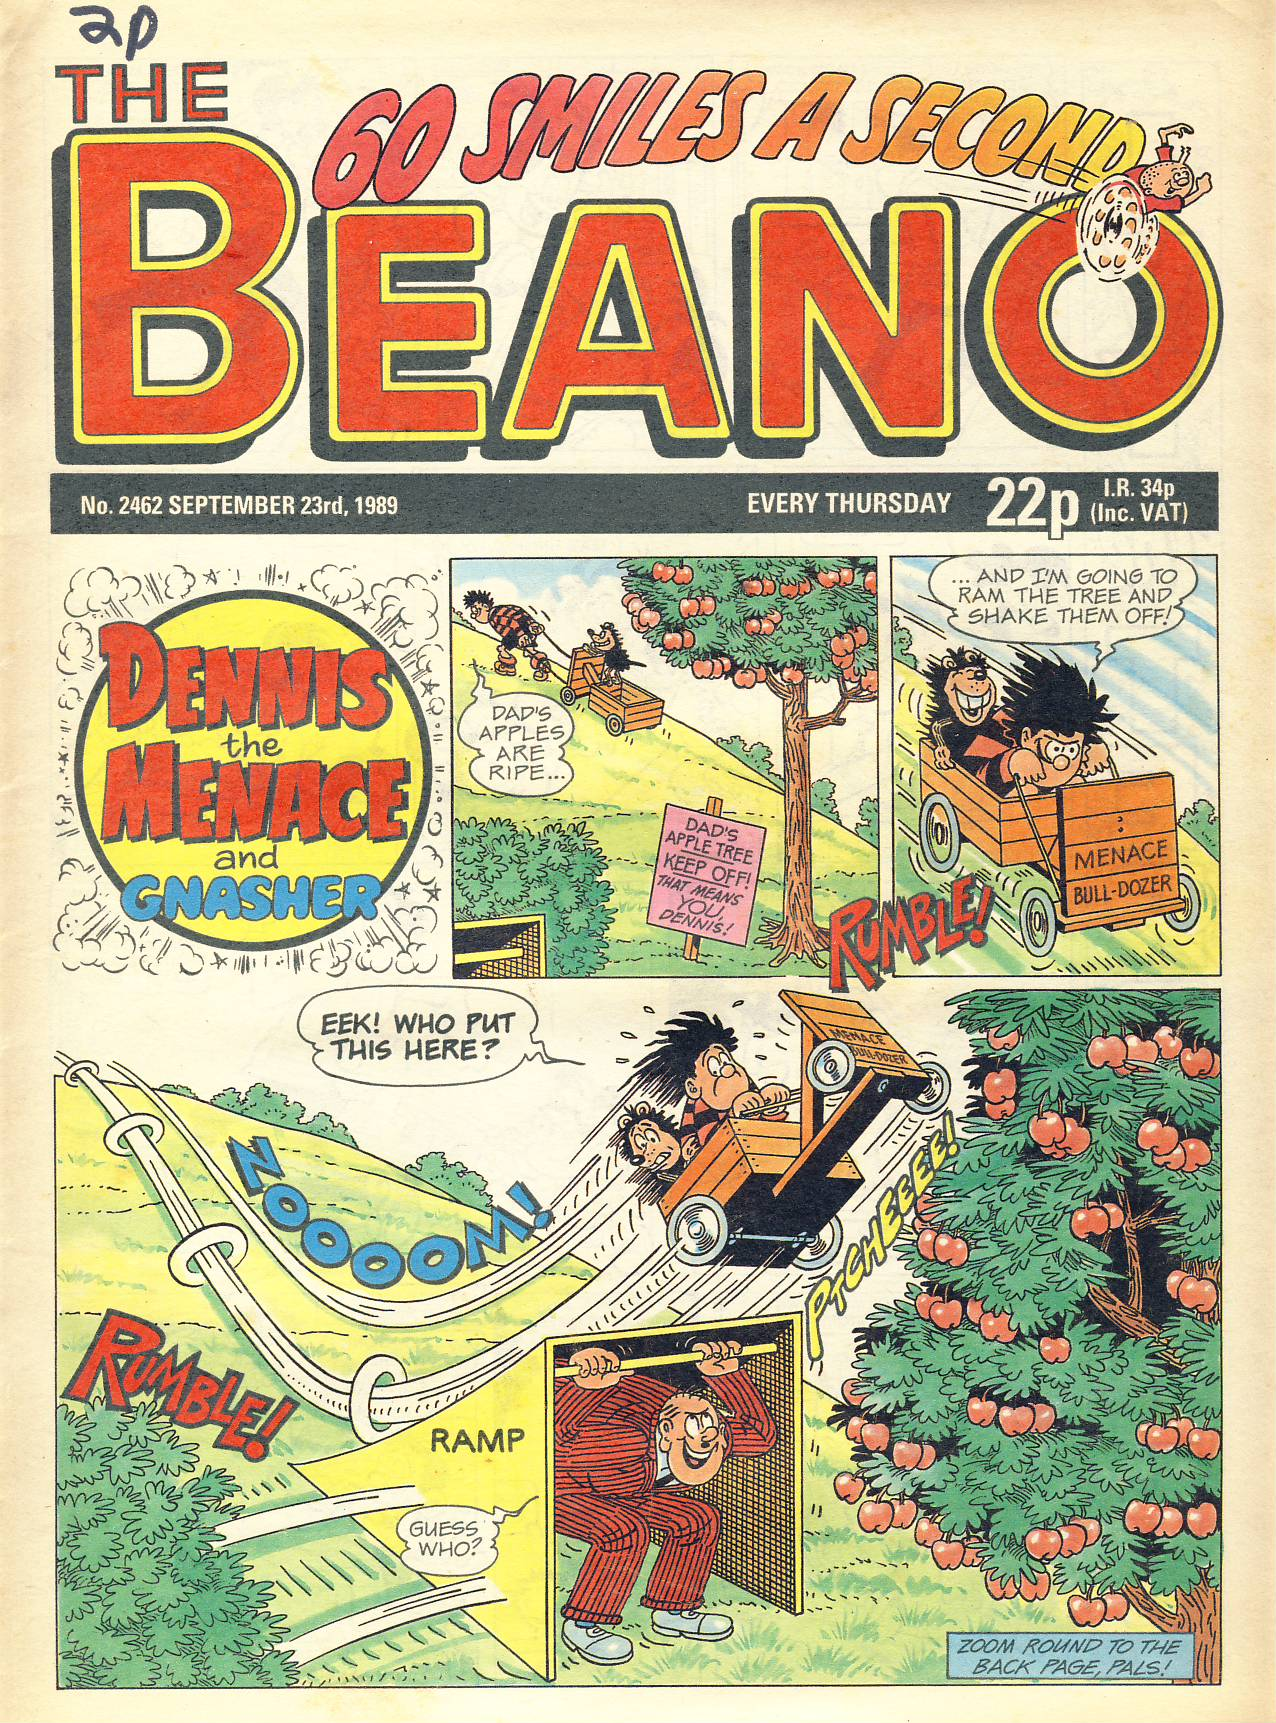 1989 September 23rd BEANO vintage comic Good Gift Christmas Present Birthday Anniversary ref323a pre-owned item in good read condition.